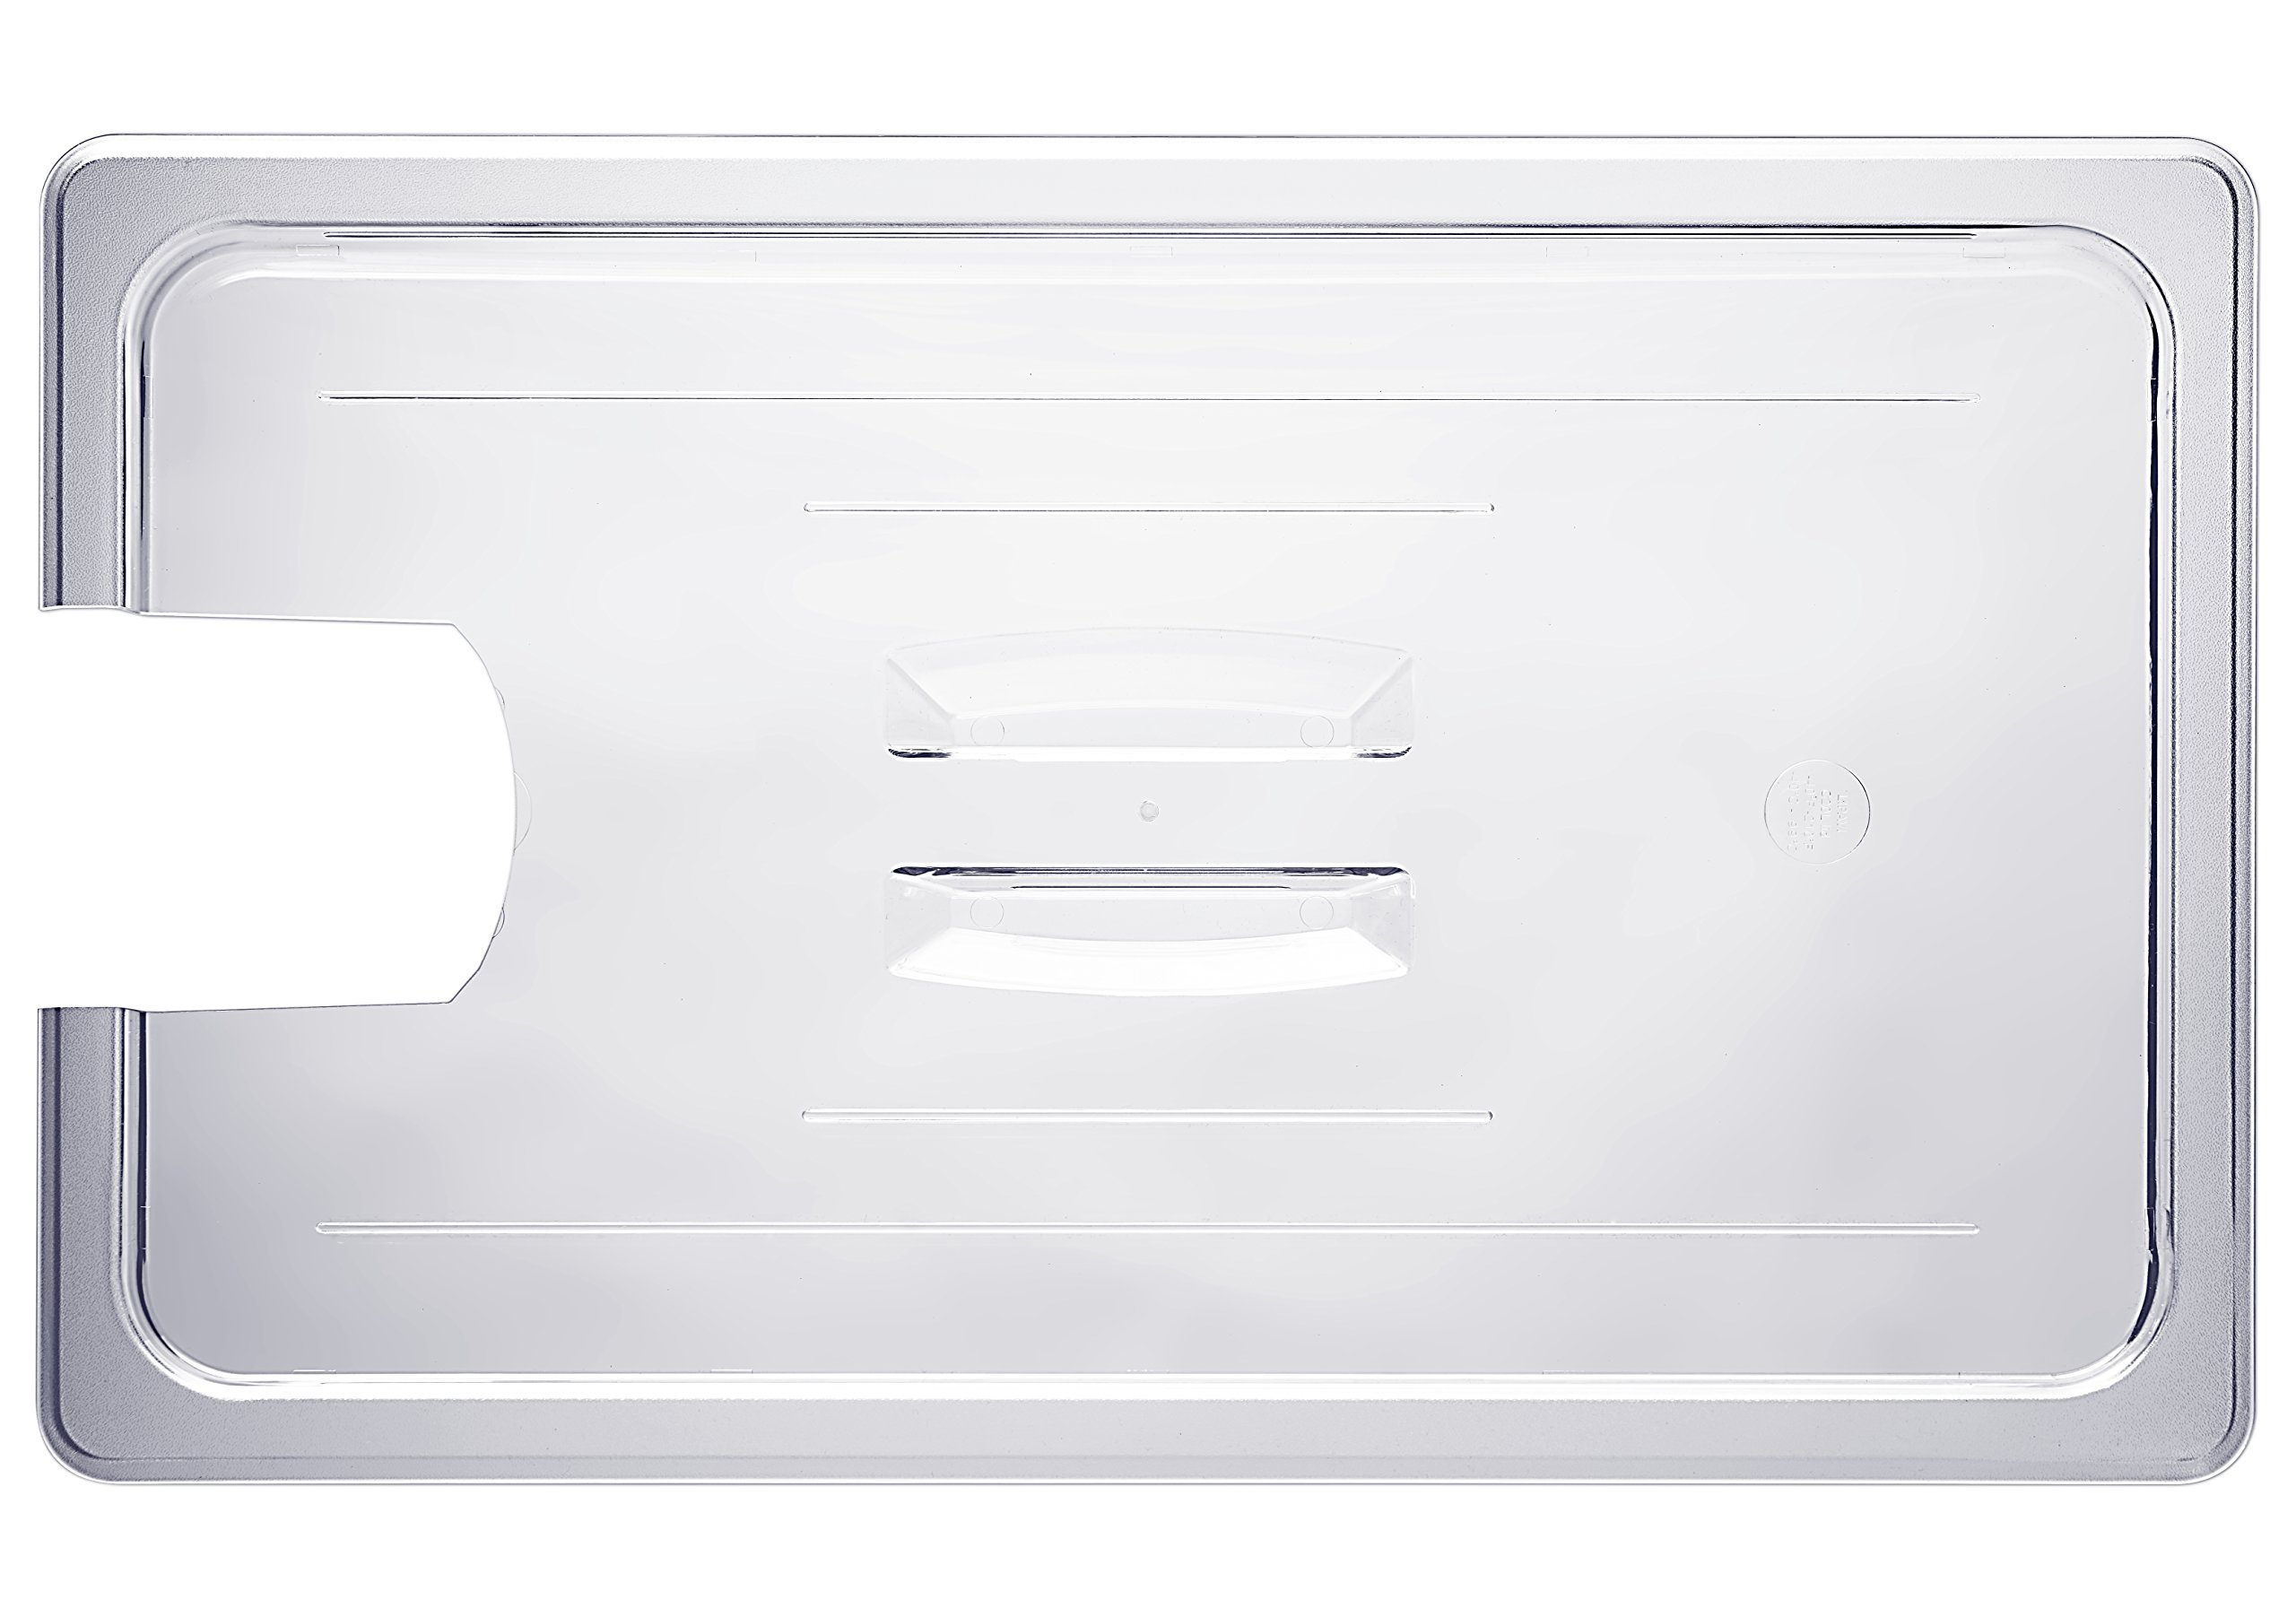 C20L-PCR Lid for LIPAVI C20 Sous Vide Container, with cut-out for the PolyScience Creative immersion circulator